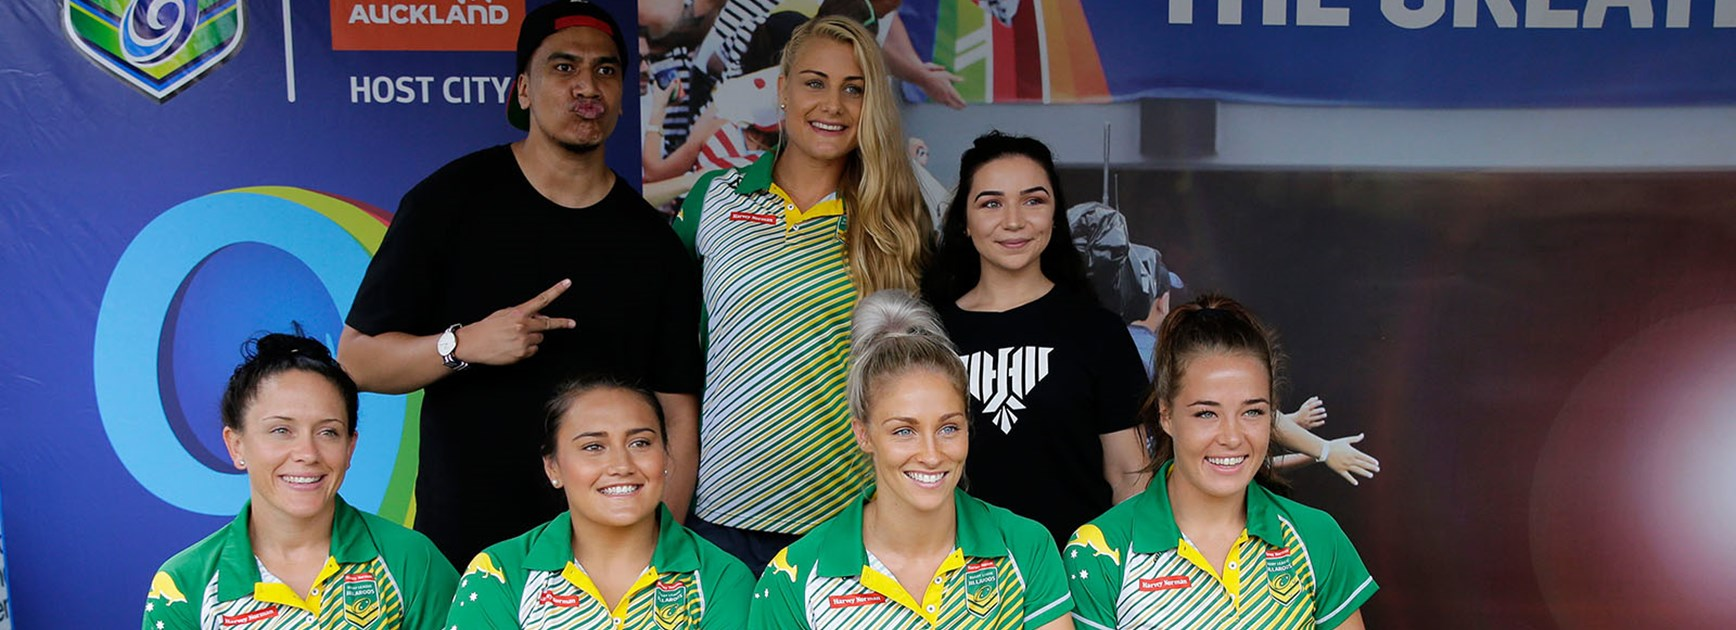 The Jillaroos have some fun at the Downer NRL Auckland Nines fan day.